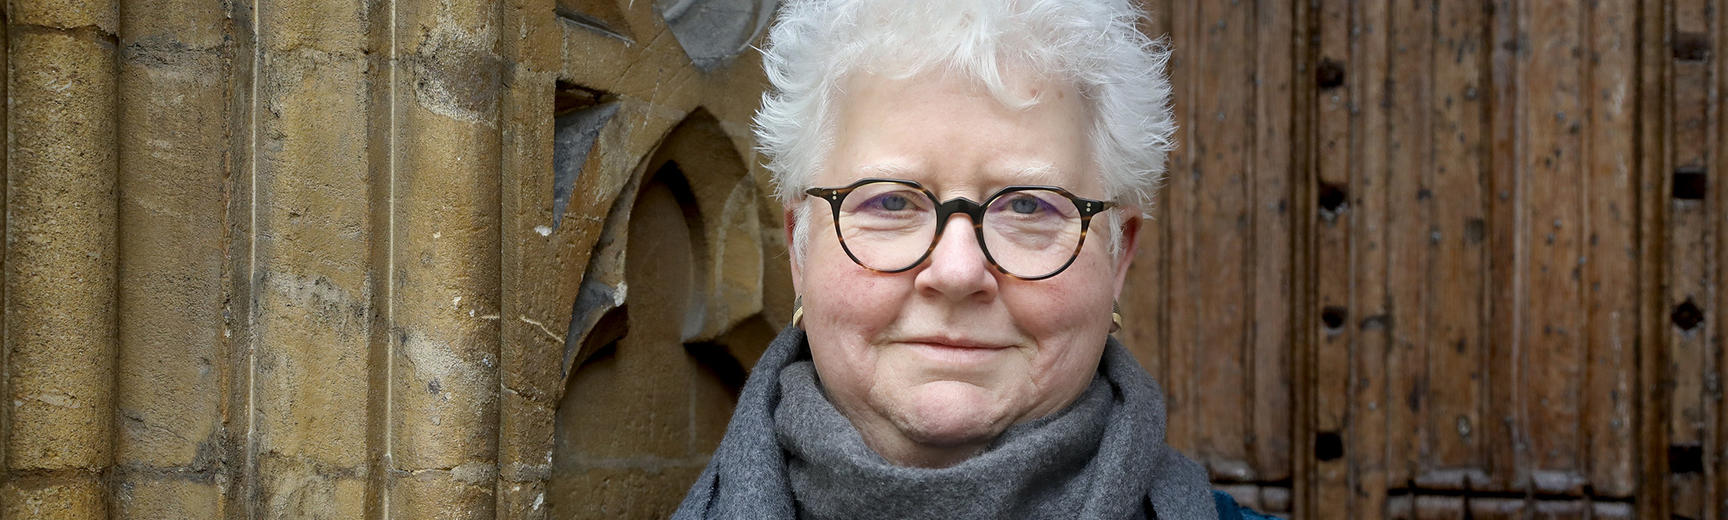 Val McDermid best-selling crime fiction novelist pictured at St Hilda's